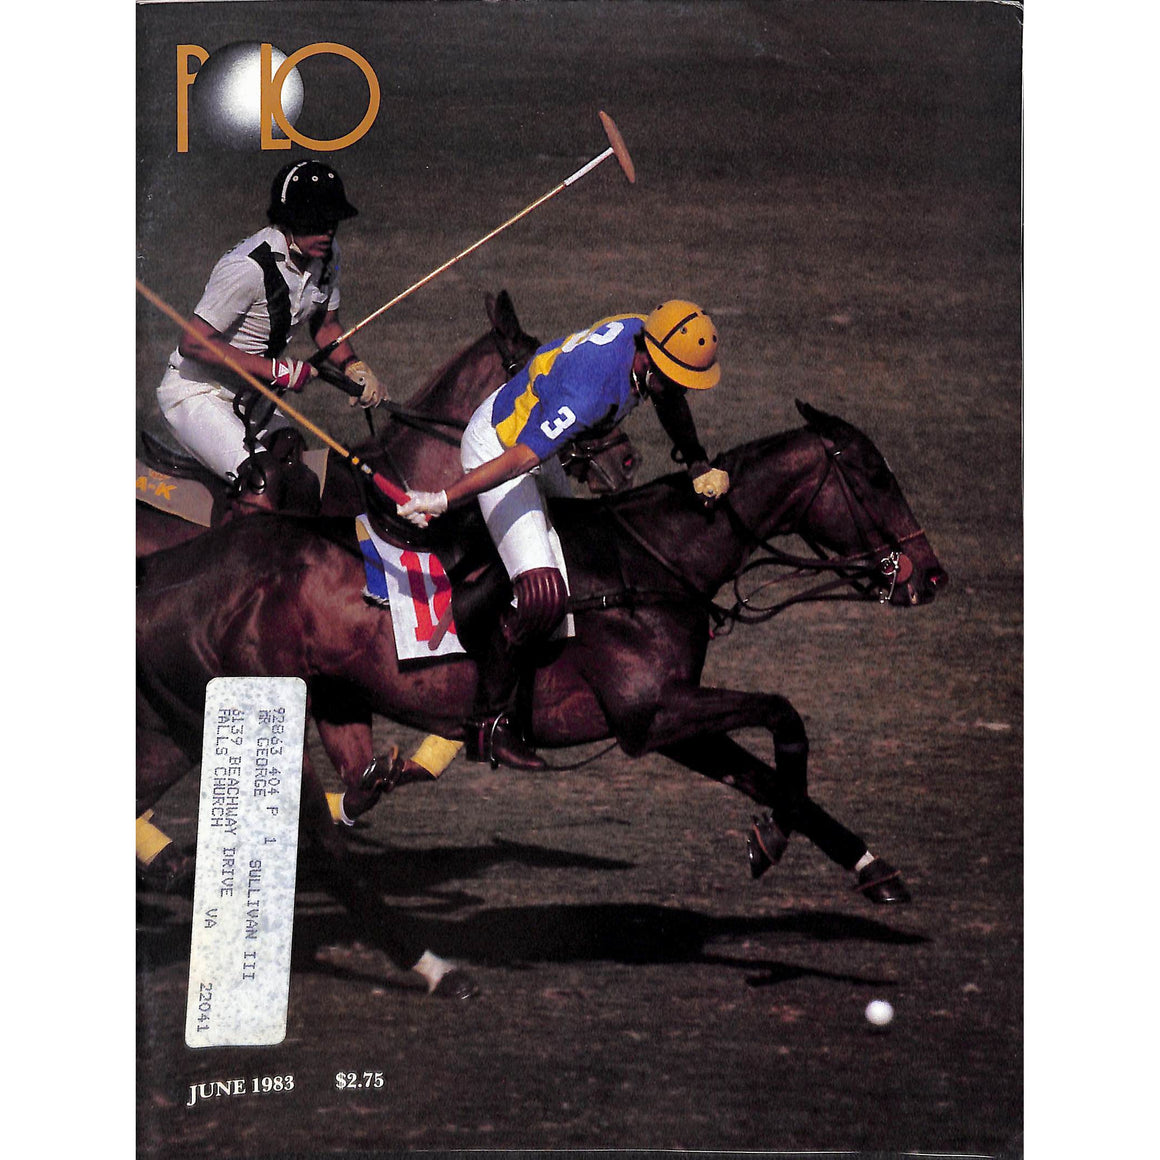 Polo Magazine June 1983